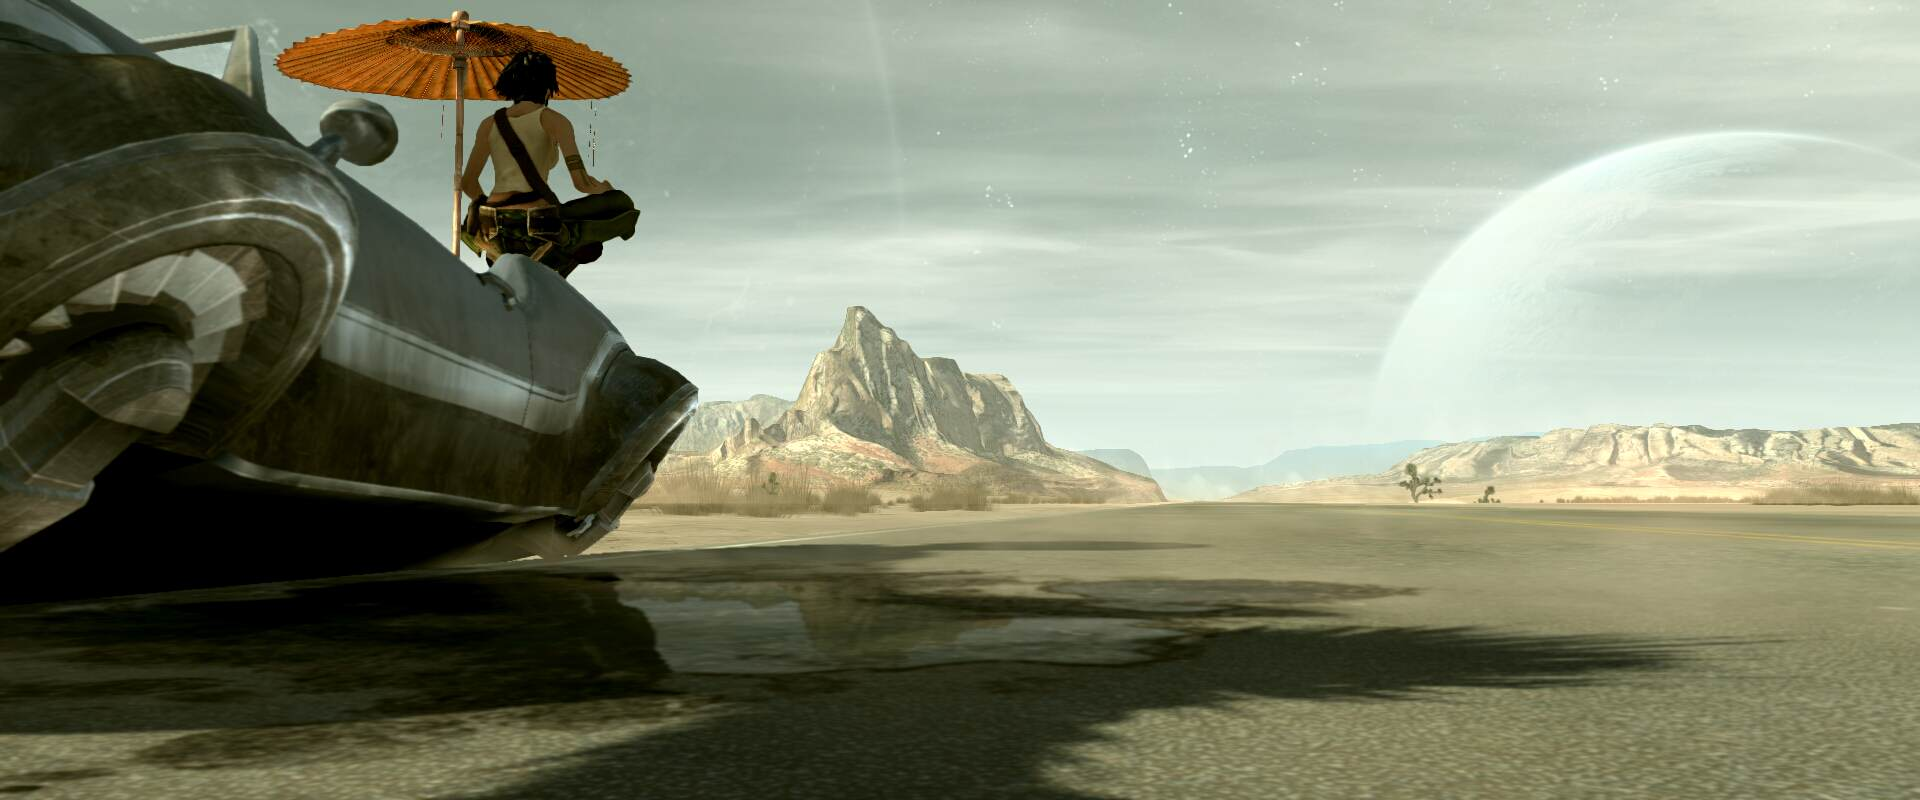 Beyond Good And Evil 2 Is Still Happening, Director Hints 9961 483daacb01937